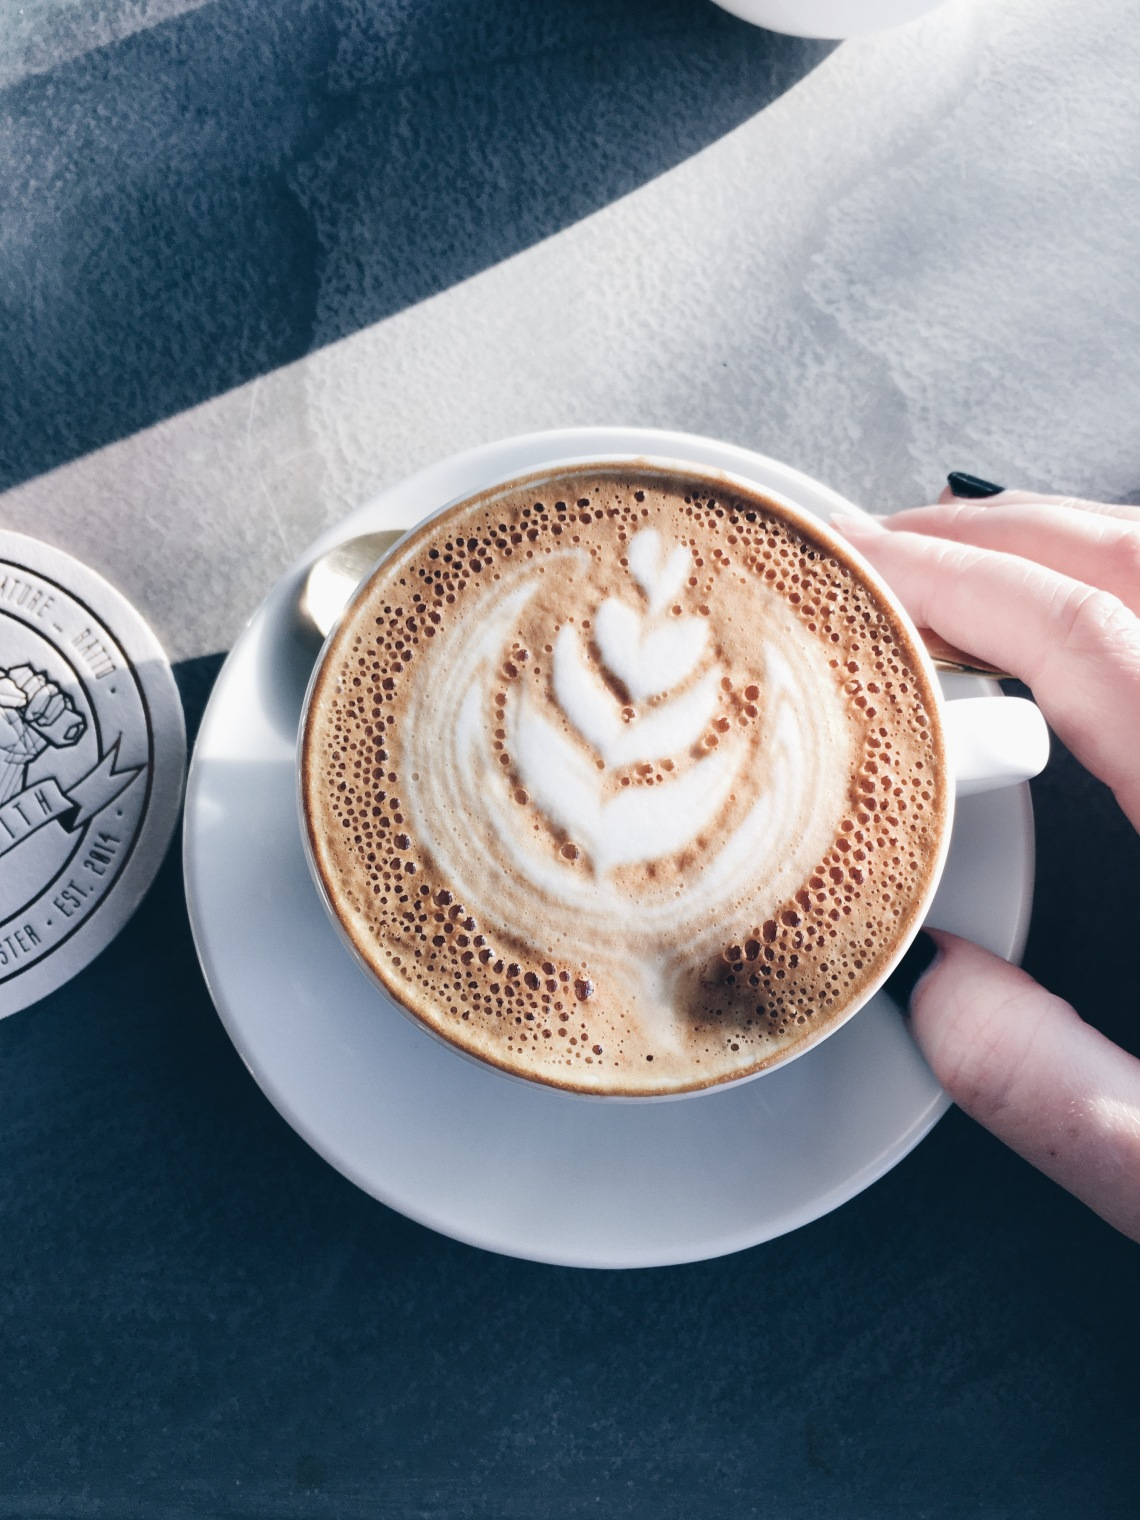 My Top 5 Coffee Spots in Manchester